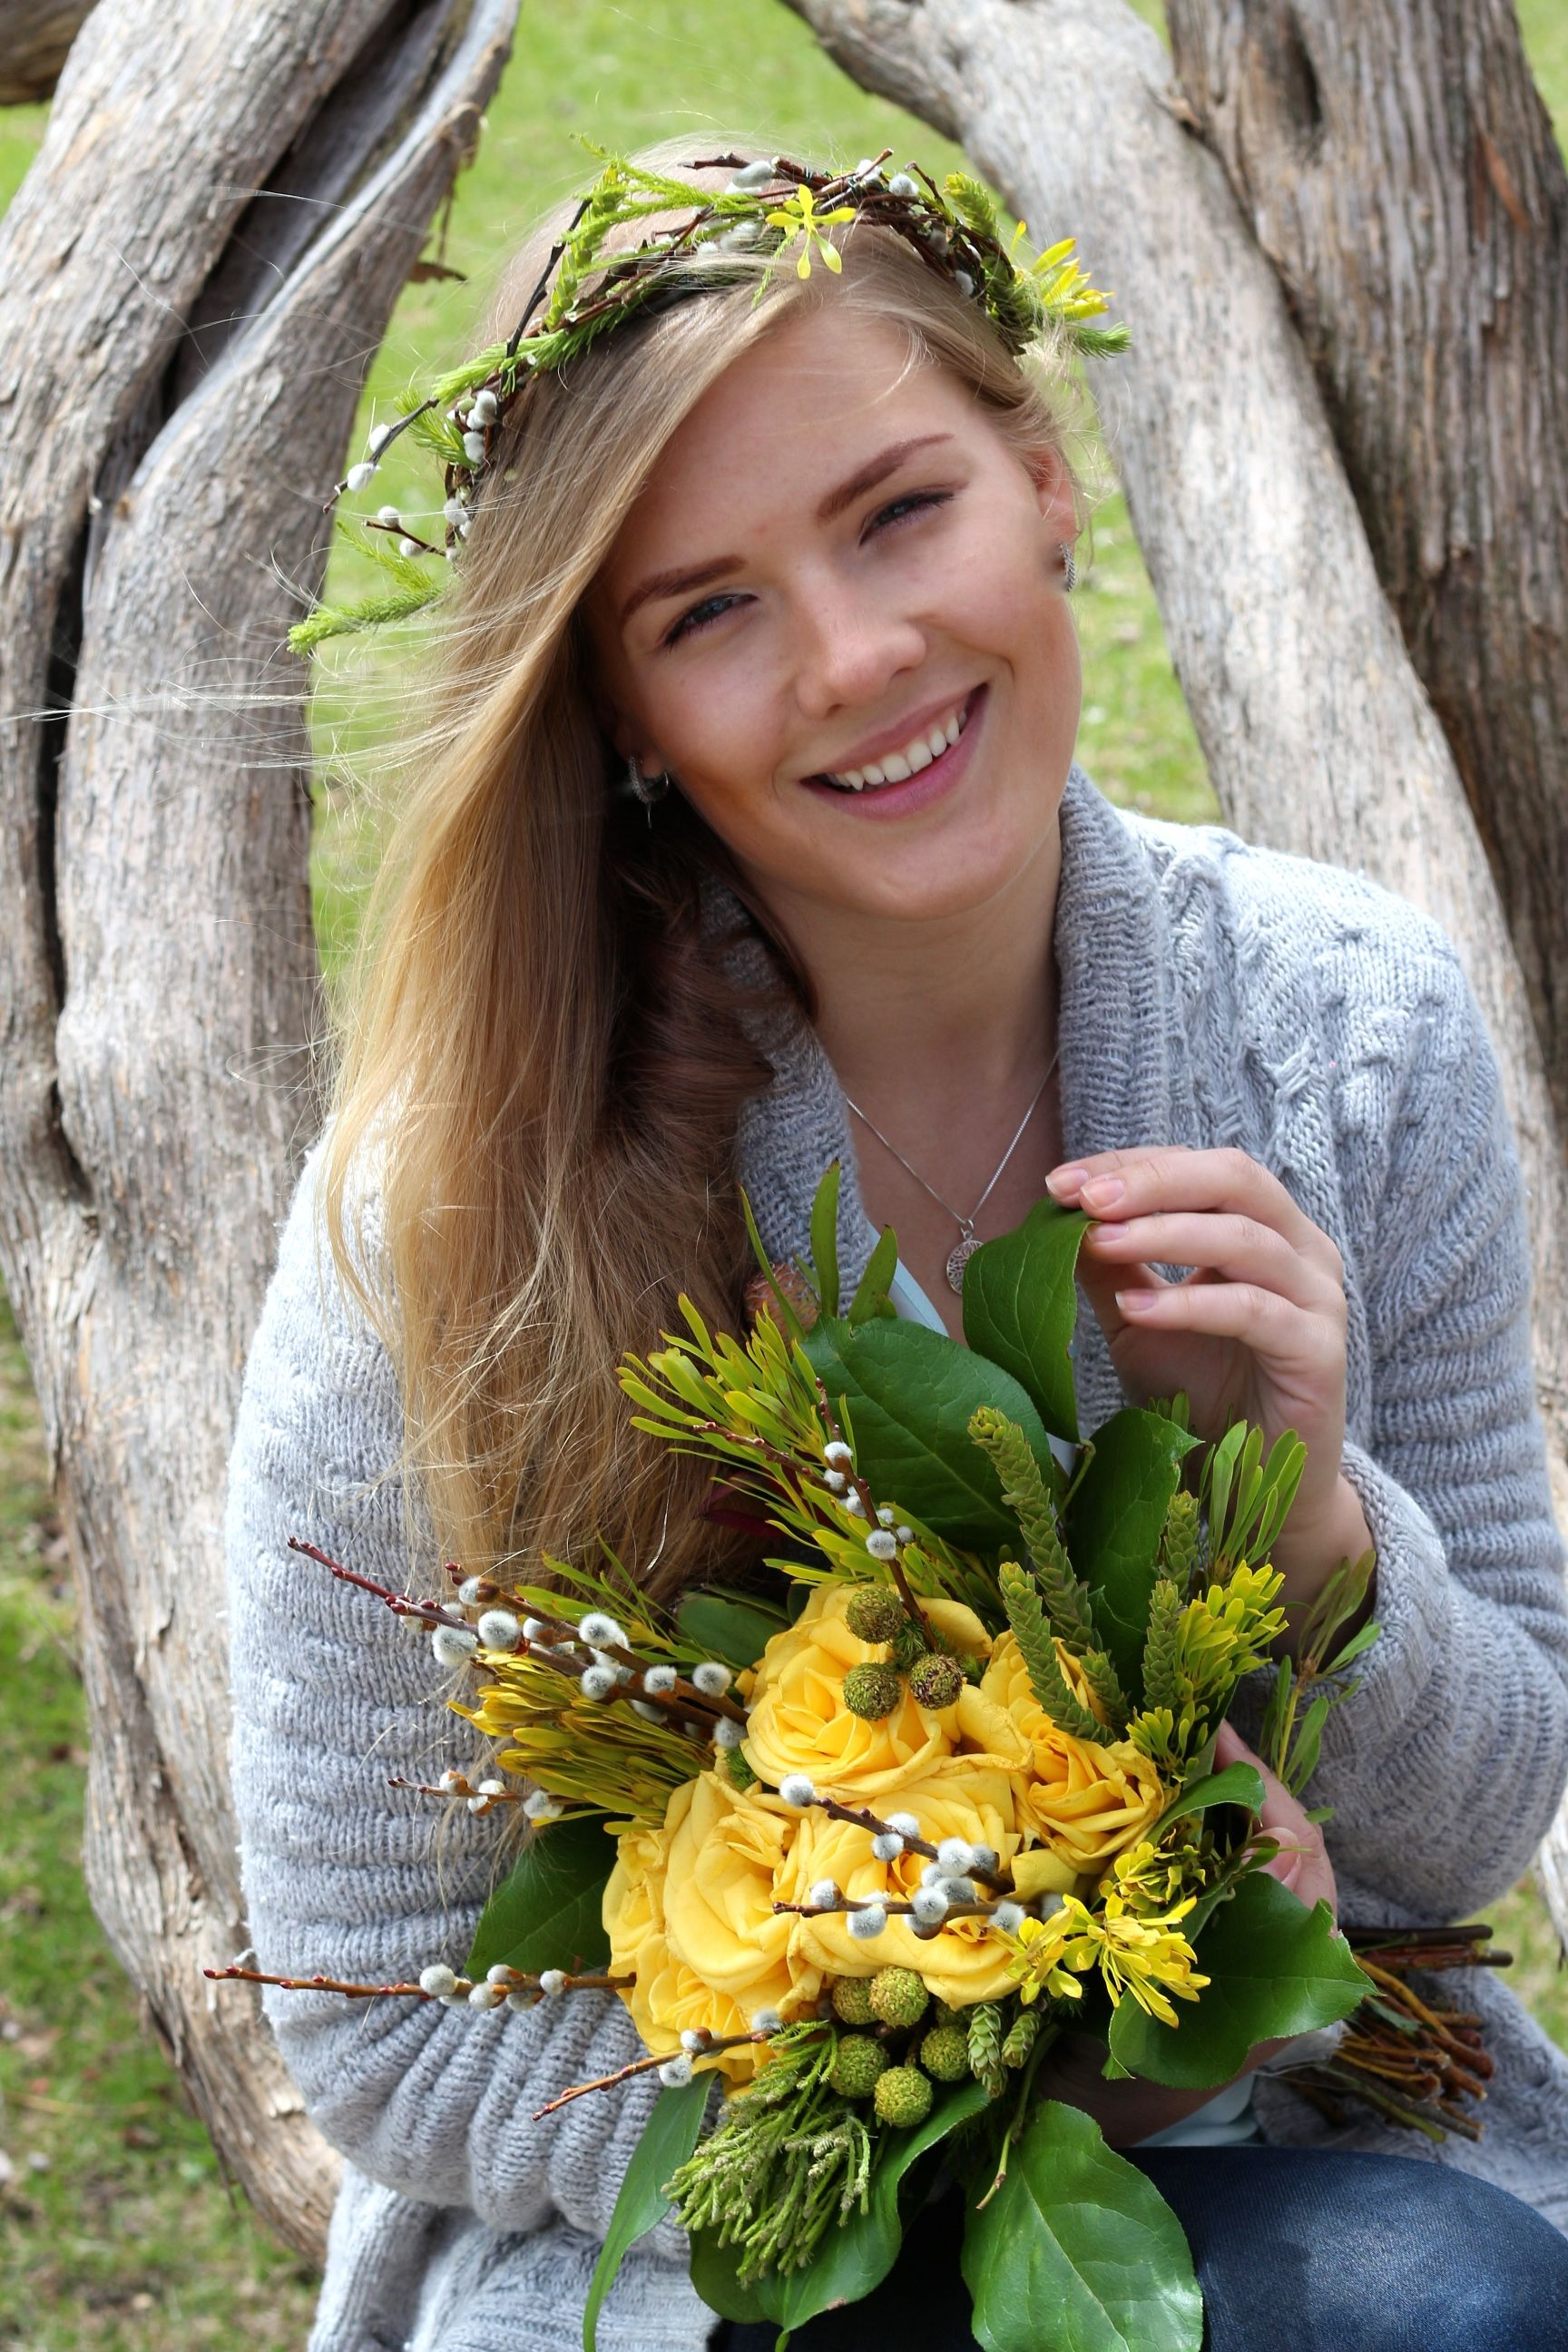 Matching Bouquet and Flower Crown, Vibrant Yellow Mix  for Spring